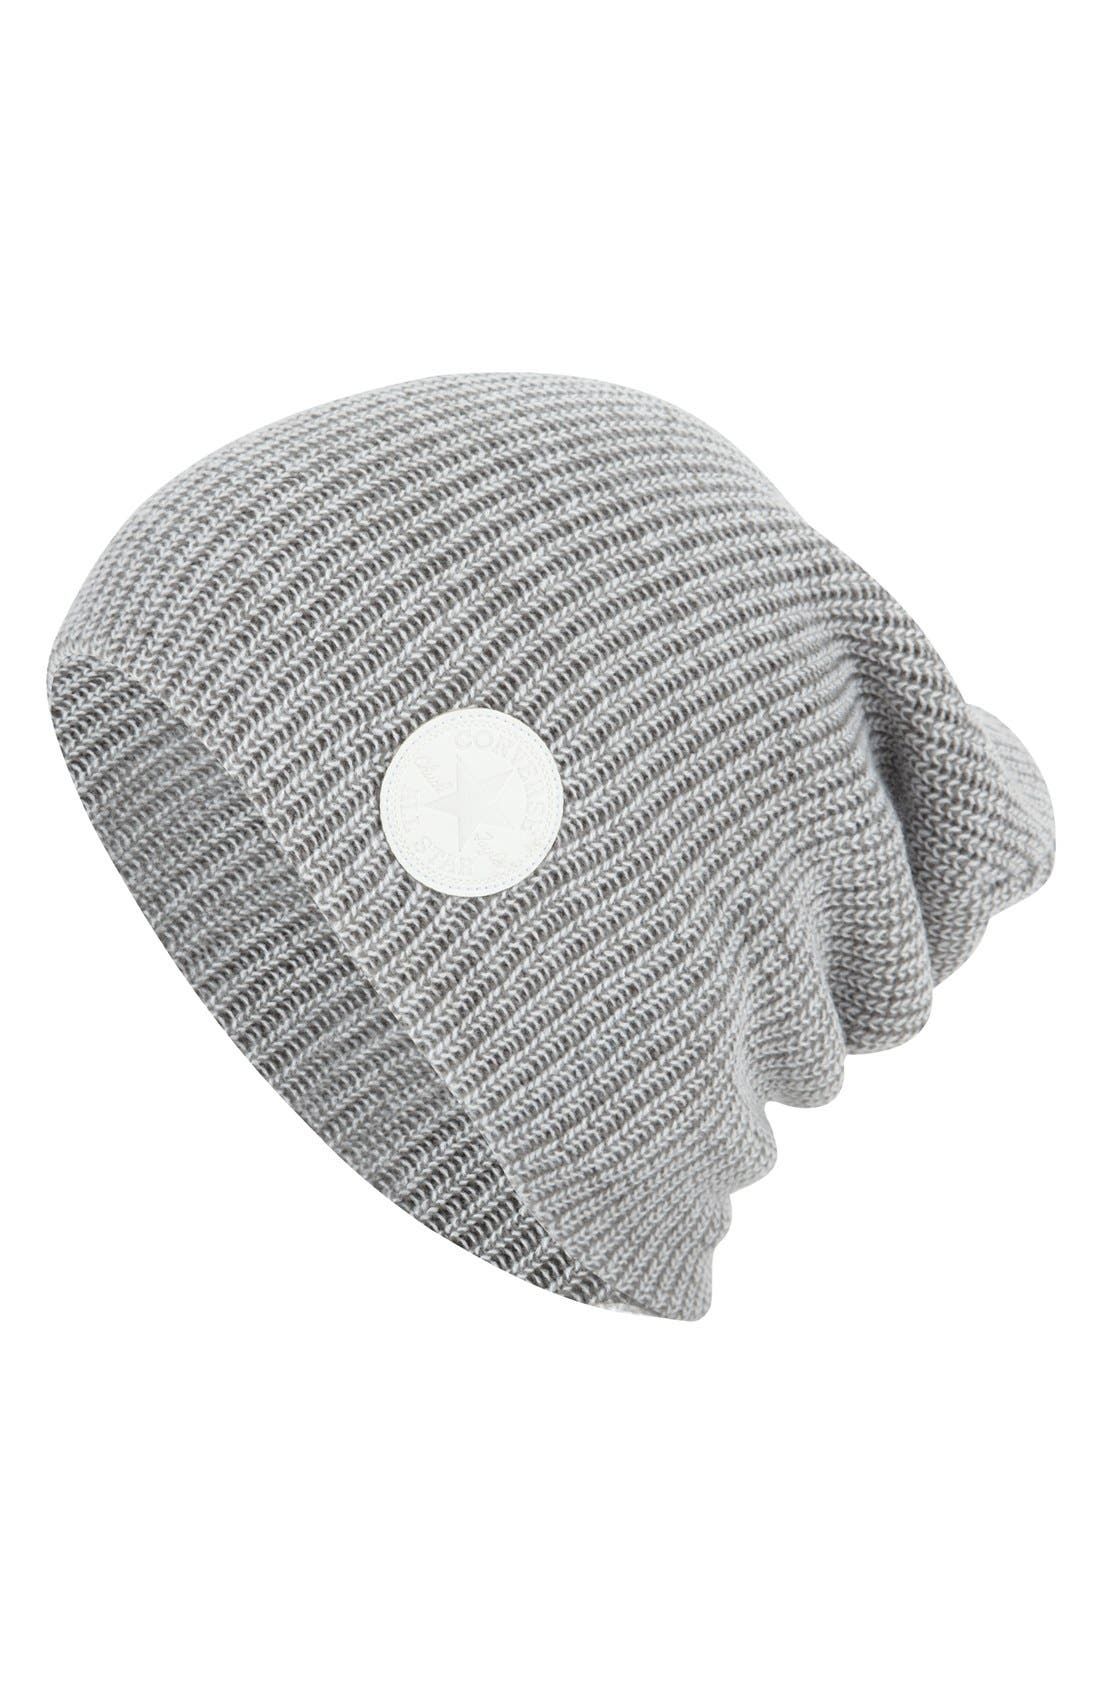 Alternate Image 1 Selected - Converse Slouchy Rib Knit Beanie